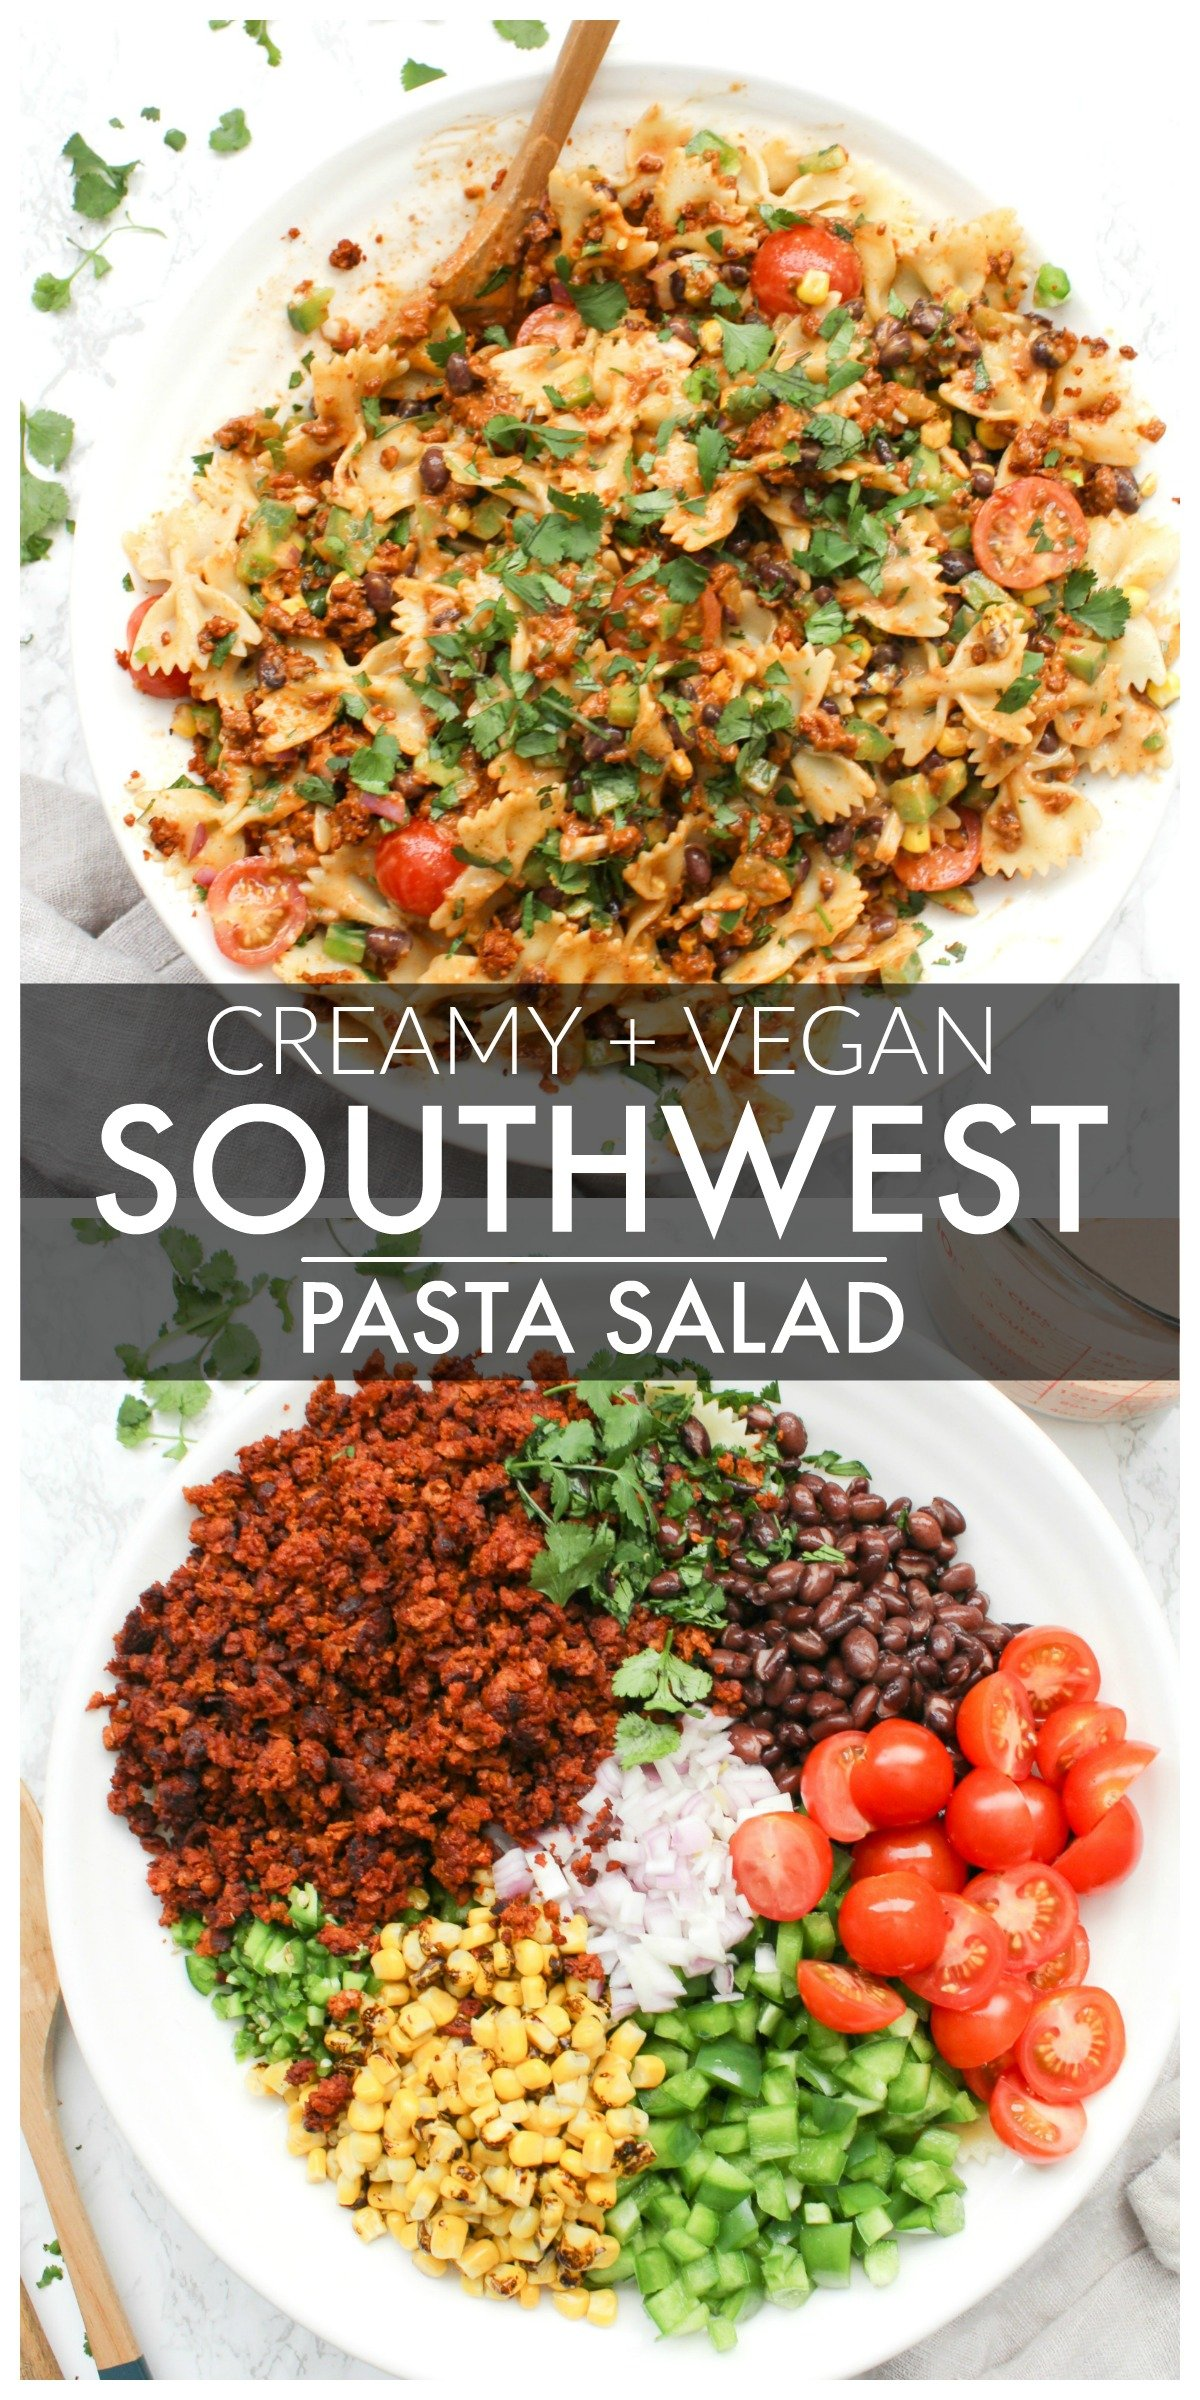 Creamy Vegan Southwest Pasta Salad - bow tie pasta, tons of veggies & soyrizo topped off with a creamy southwest dressing that is to die for   ThisSavoryVegan.com #thissavoryvegan #vegan #pastasalad